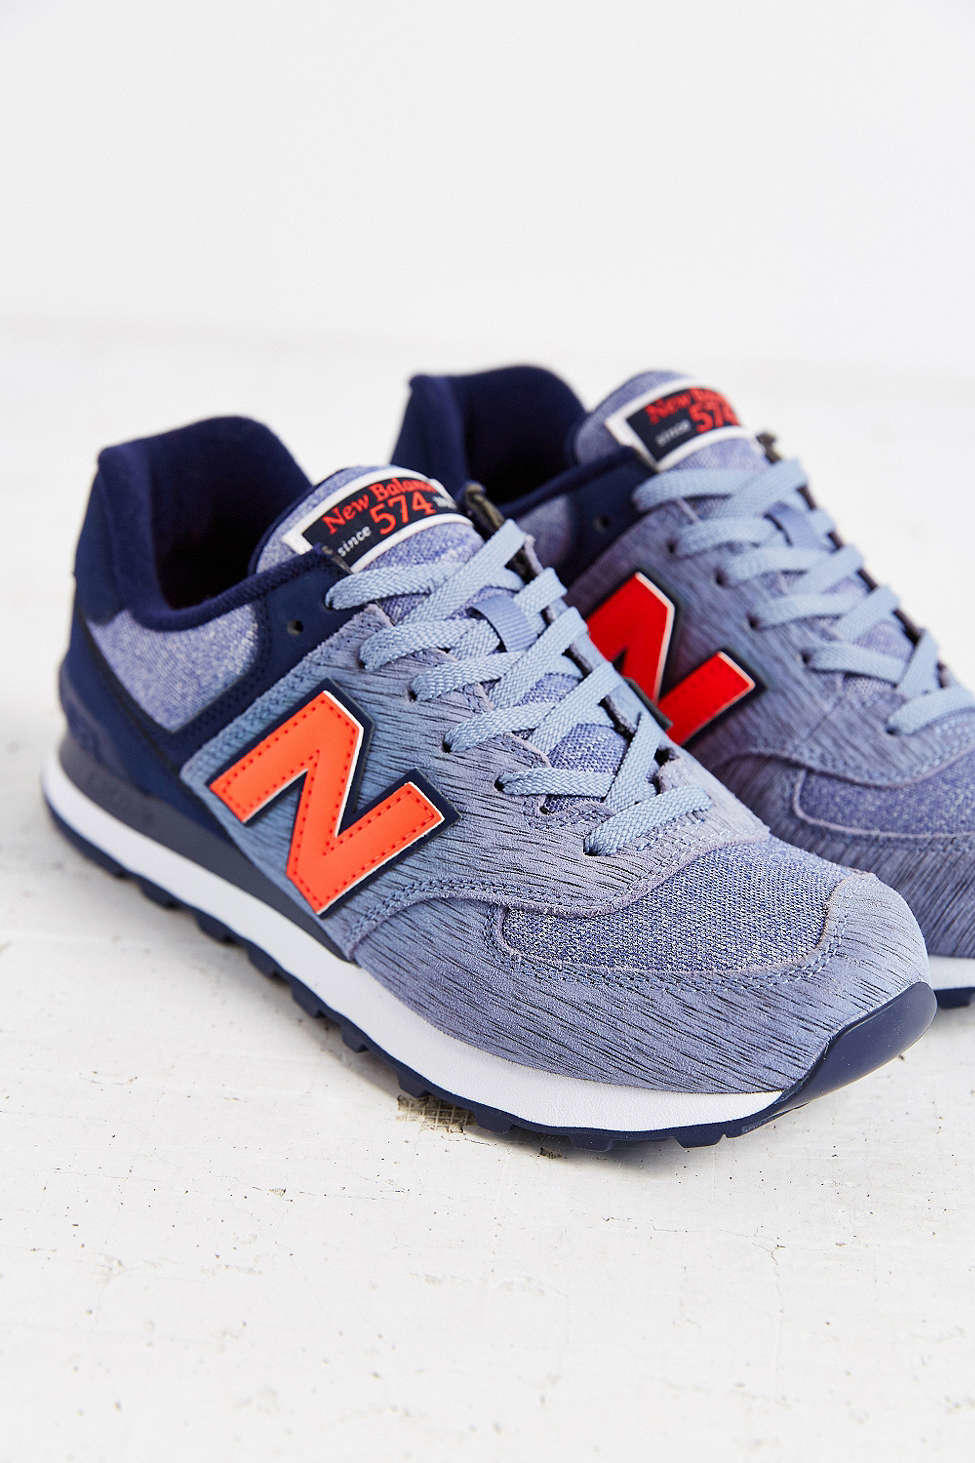 92558085d New Balance 574 Sweatshirt Running from Urban Outfitters | Quick